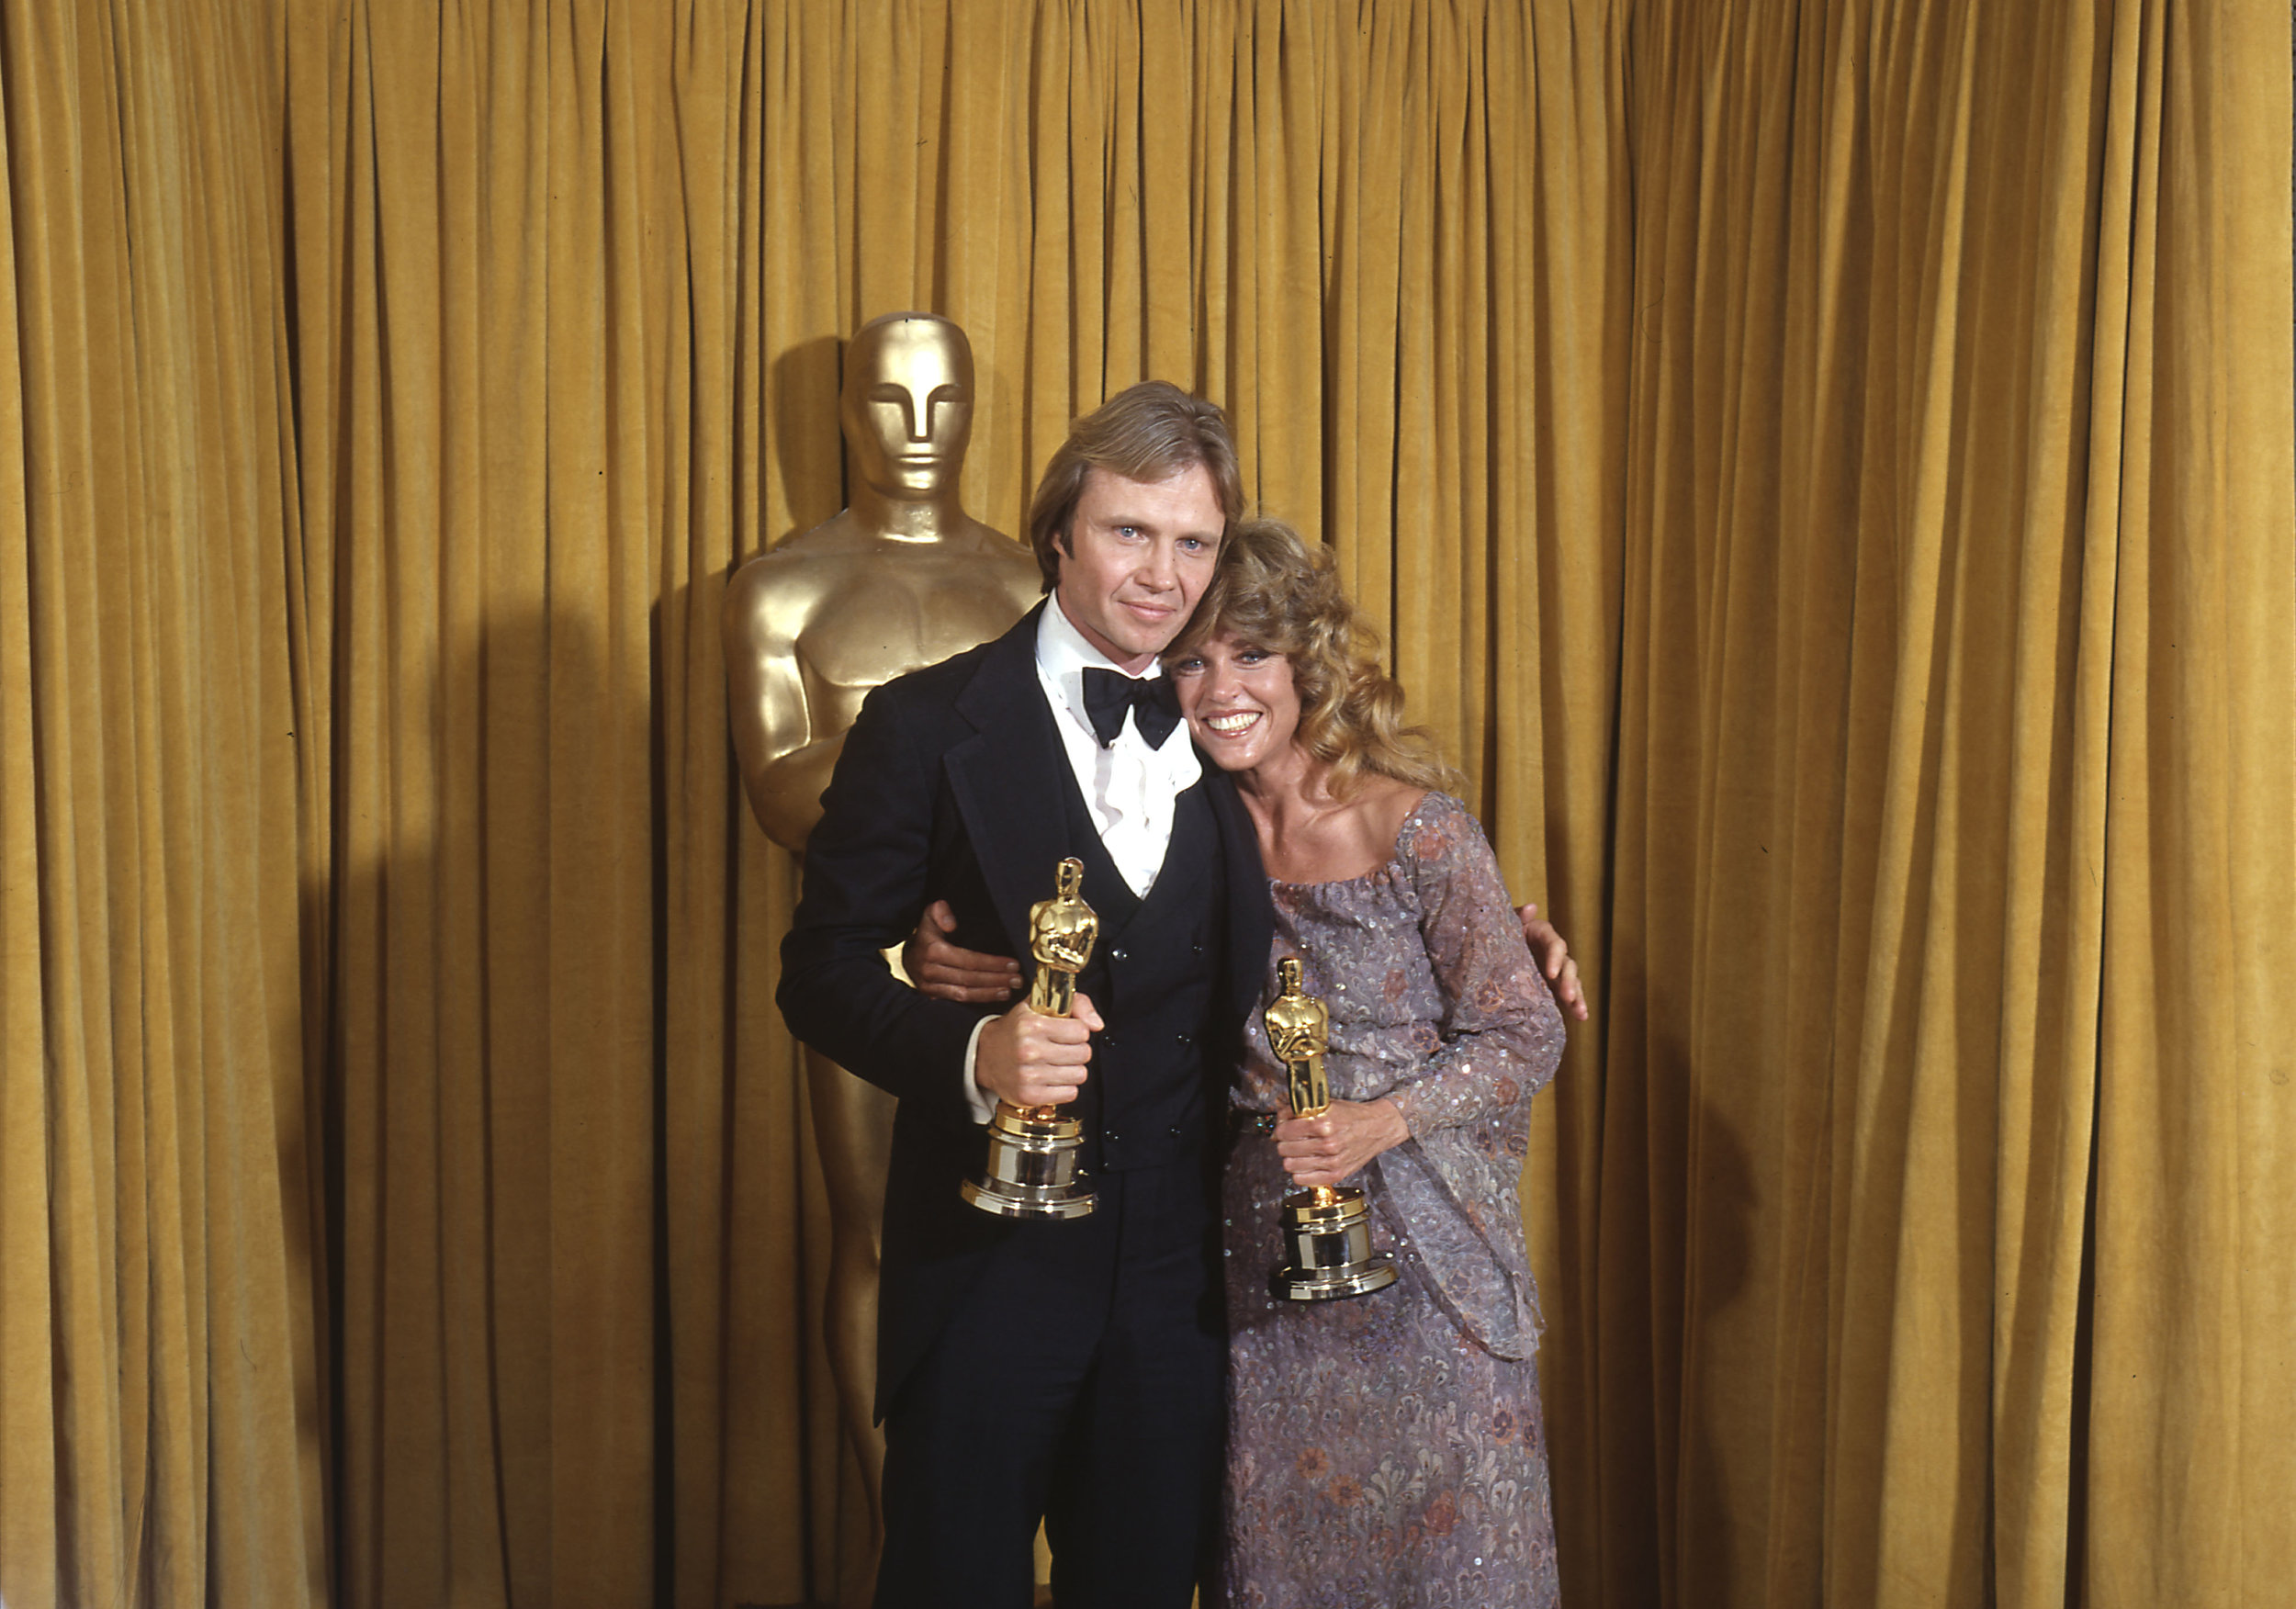 Jon Voight and Jane Fonda at the Academy Awards, 1979